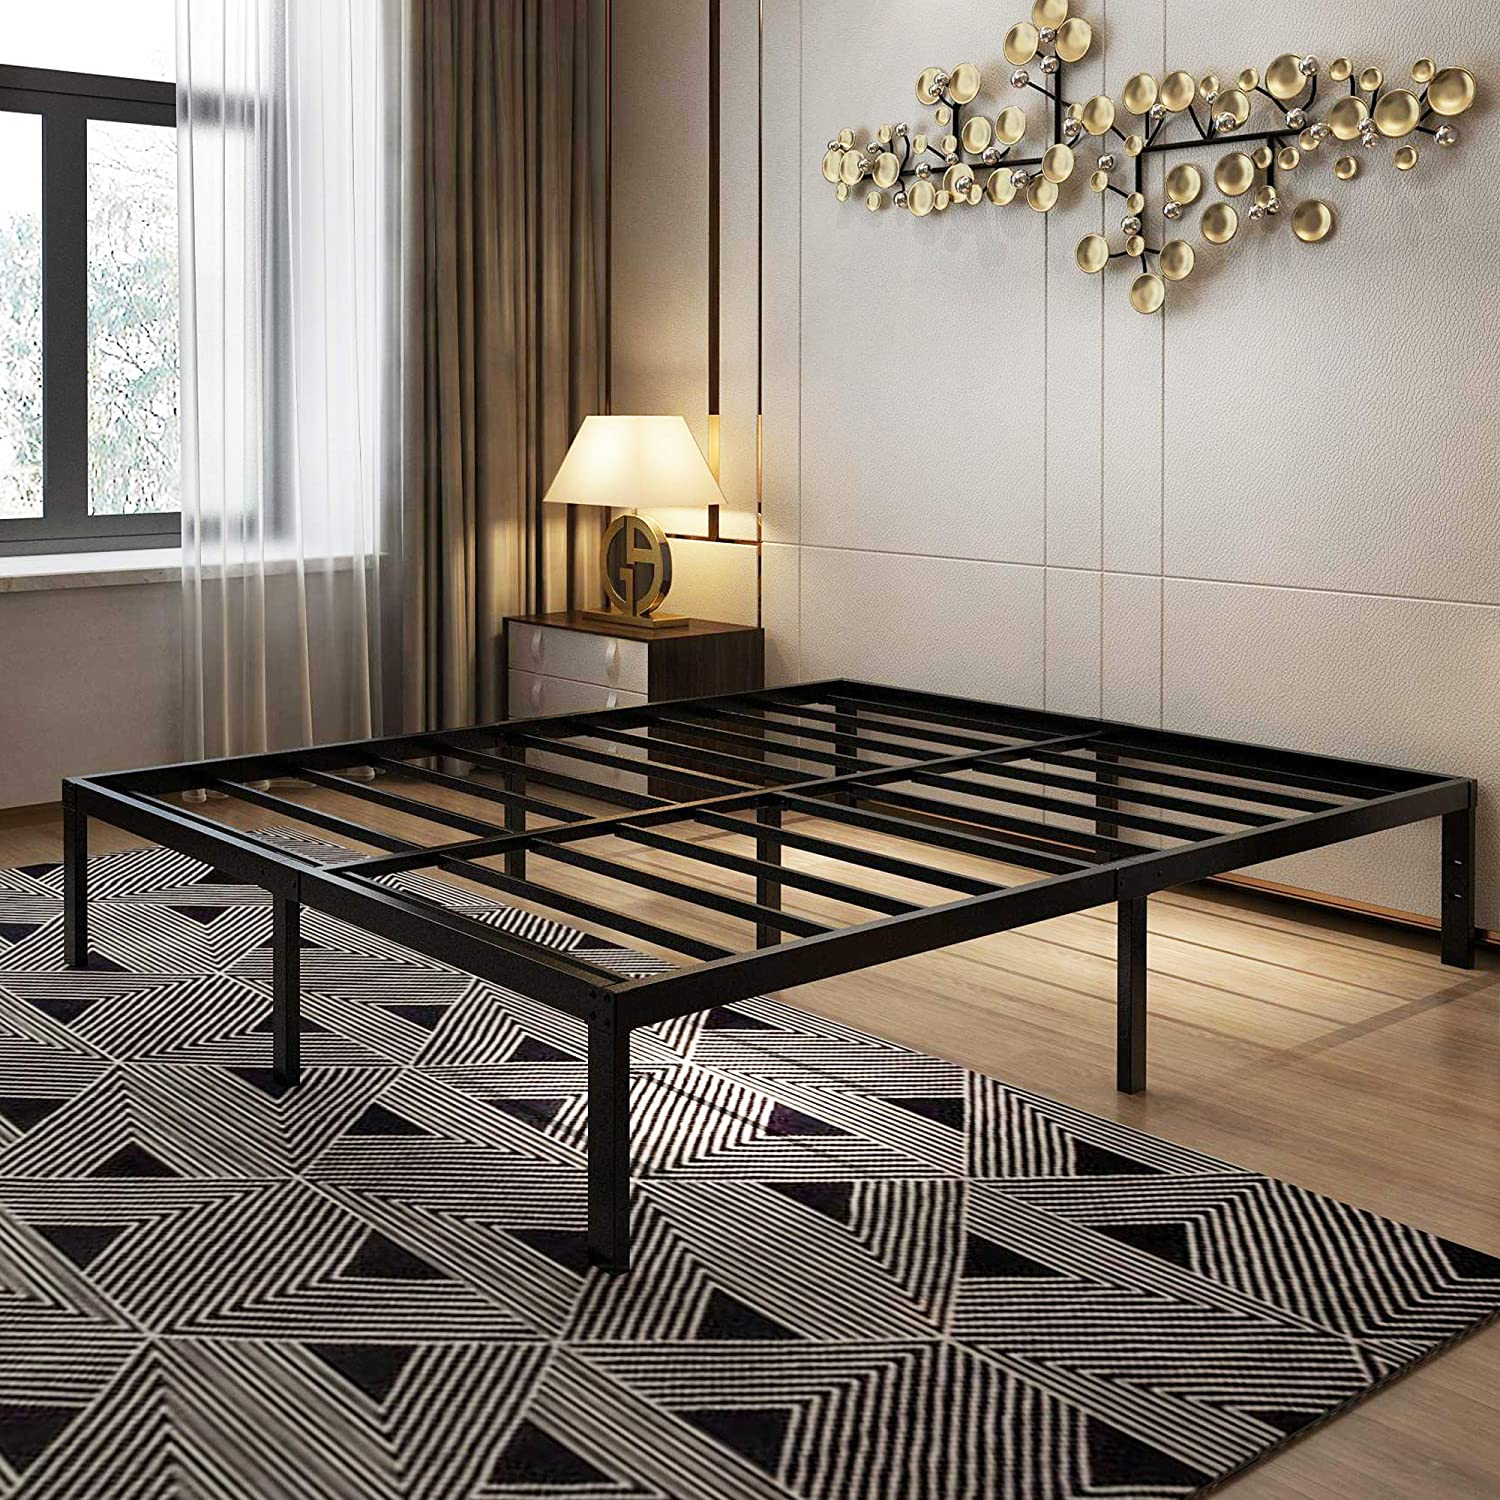 45MinST 14 Inch Platform Bed Frame/Easy Assembly Mattress Foundation / 3000lbs Heavy Duty Steel Slat/Noise Free/No Box Spring Needed, King